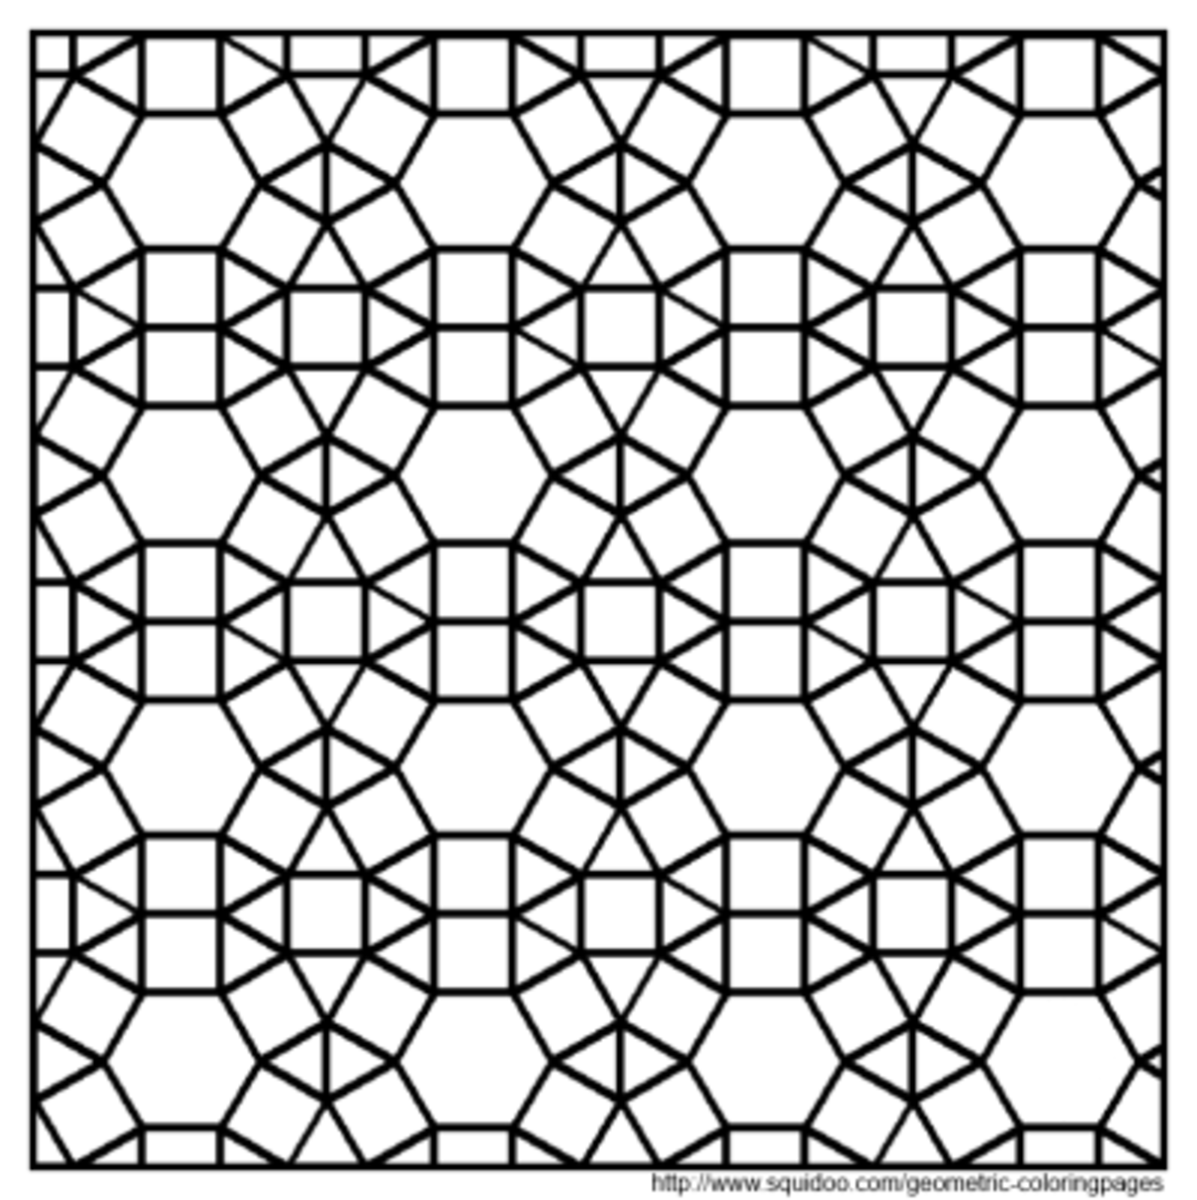 tessellations coloring pages - photo#21